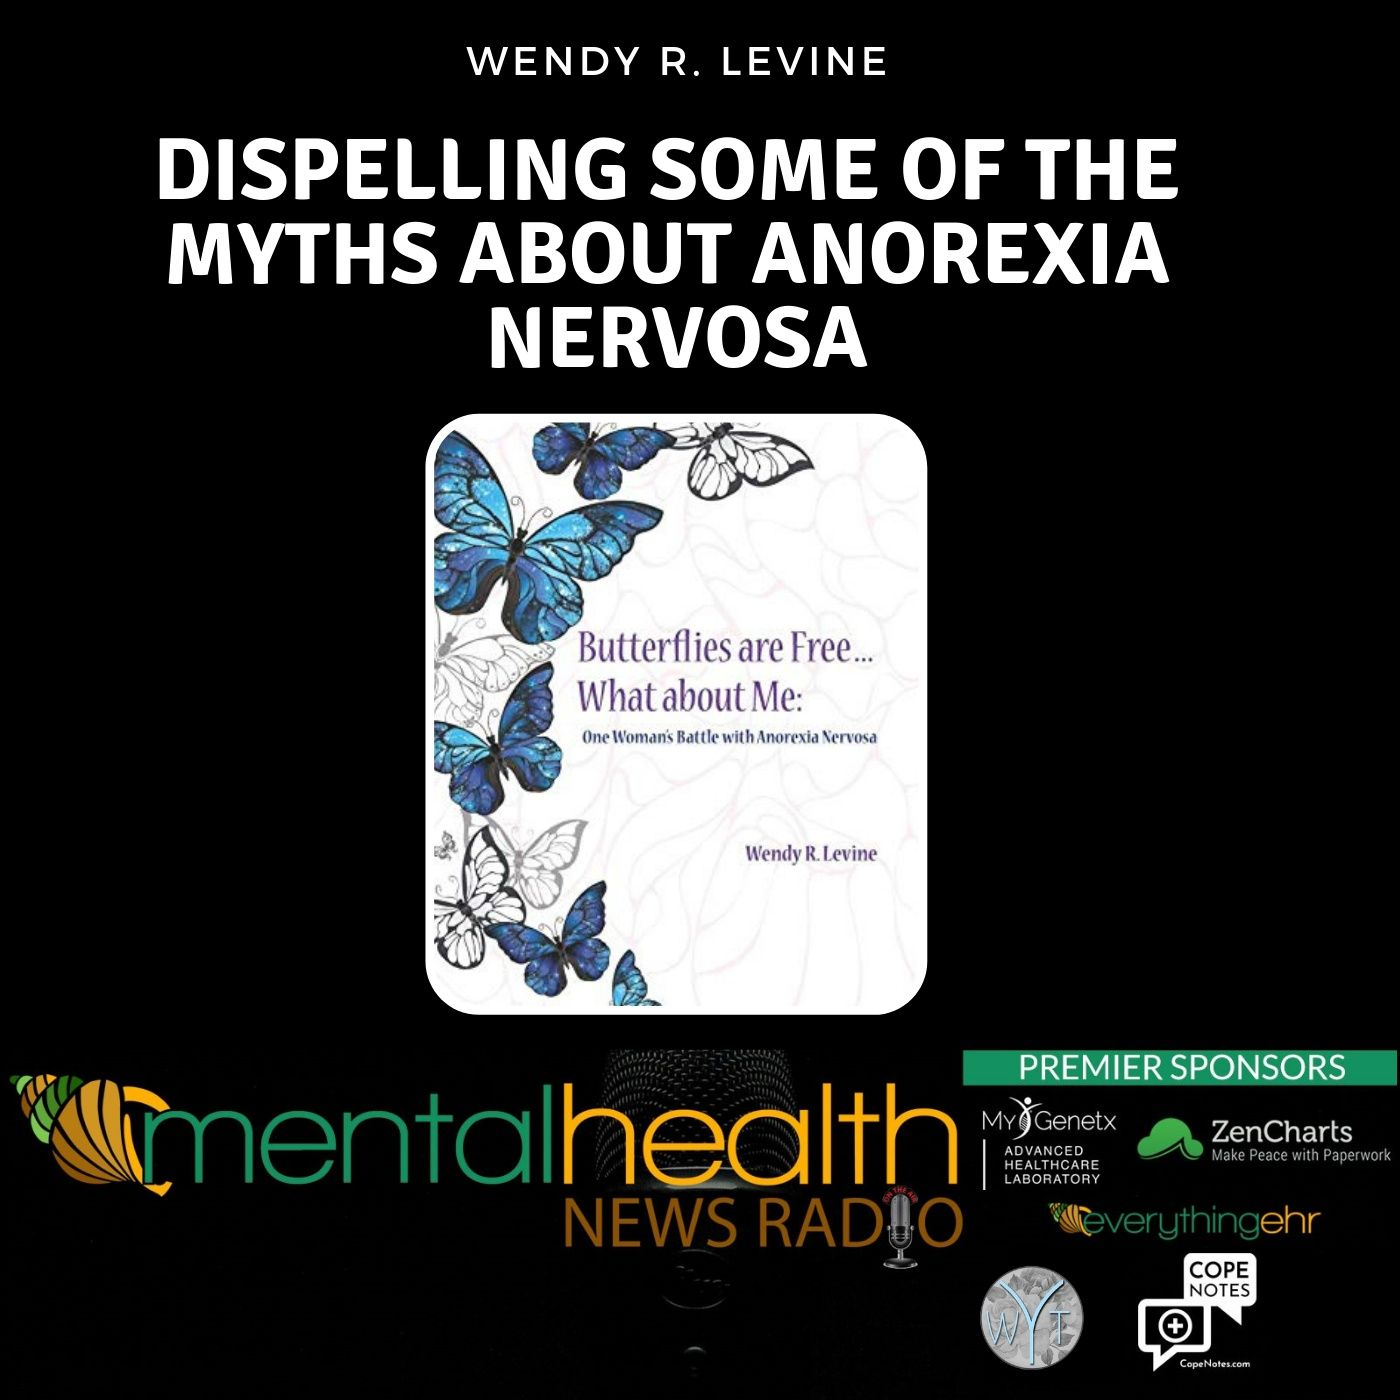 Mental Health News Radio - Dispelling Some of the Myths About Anorexia Nervosa: Wendy R. Levine